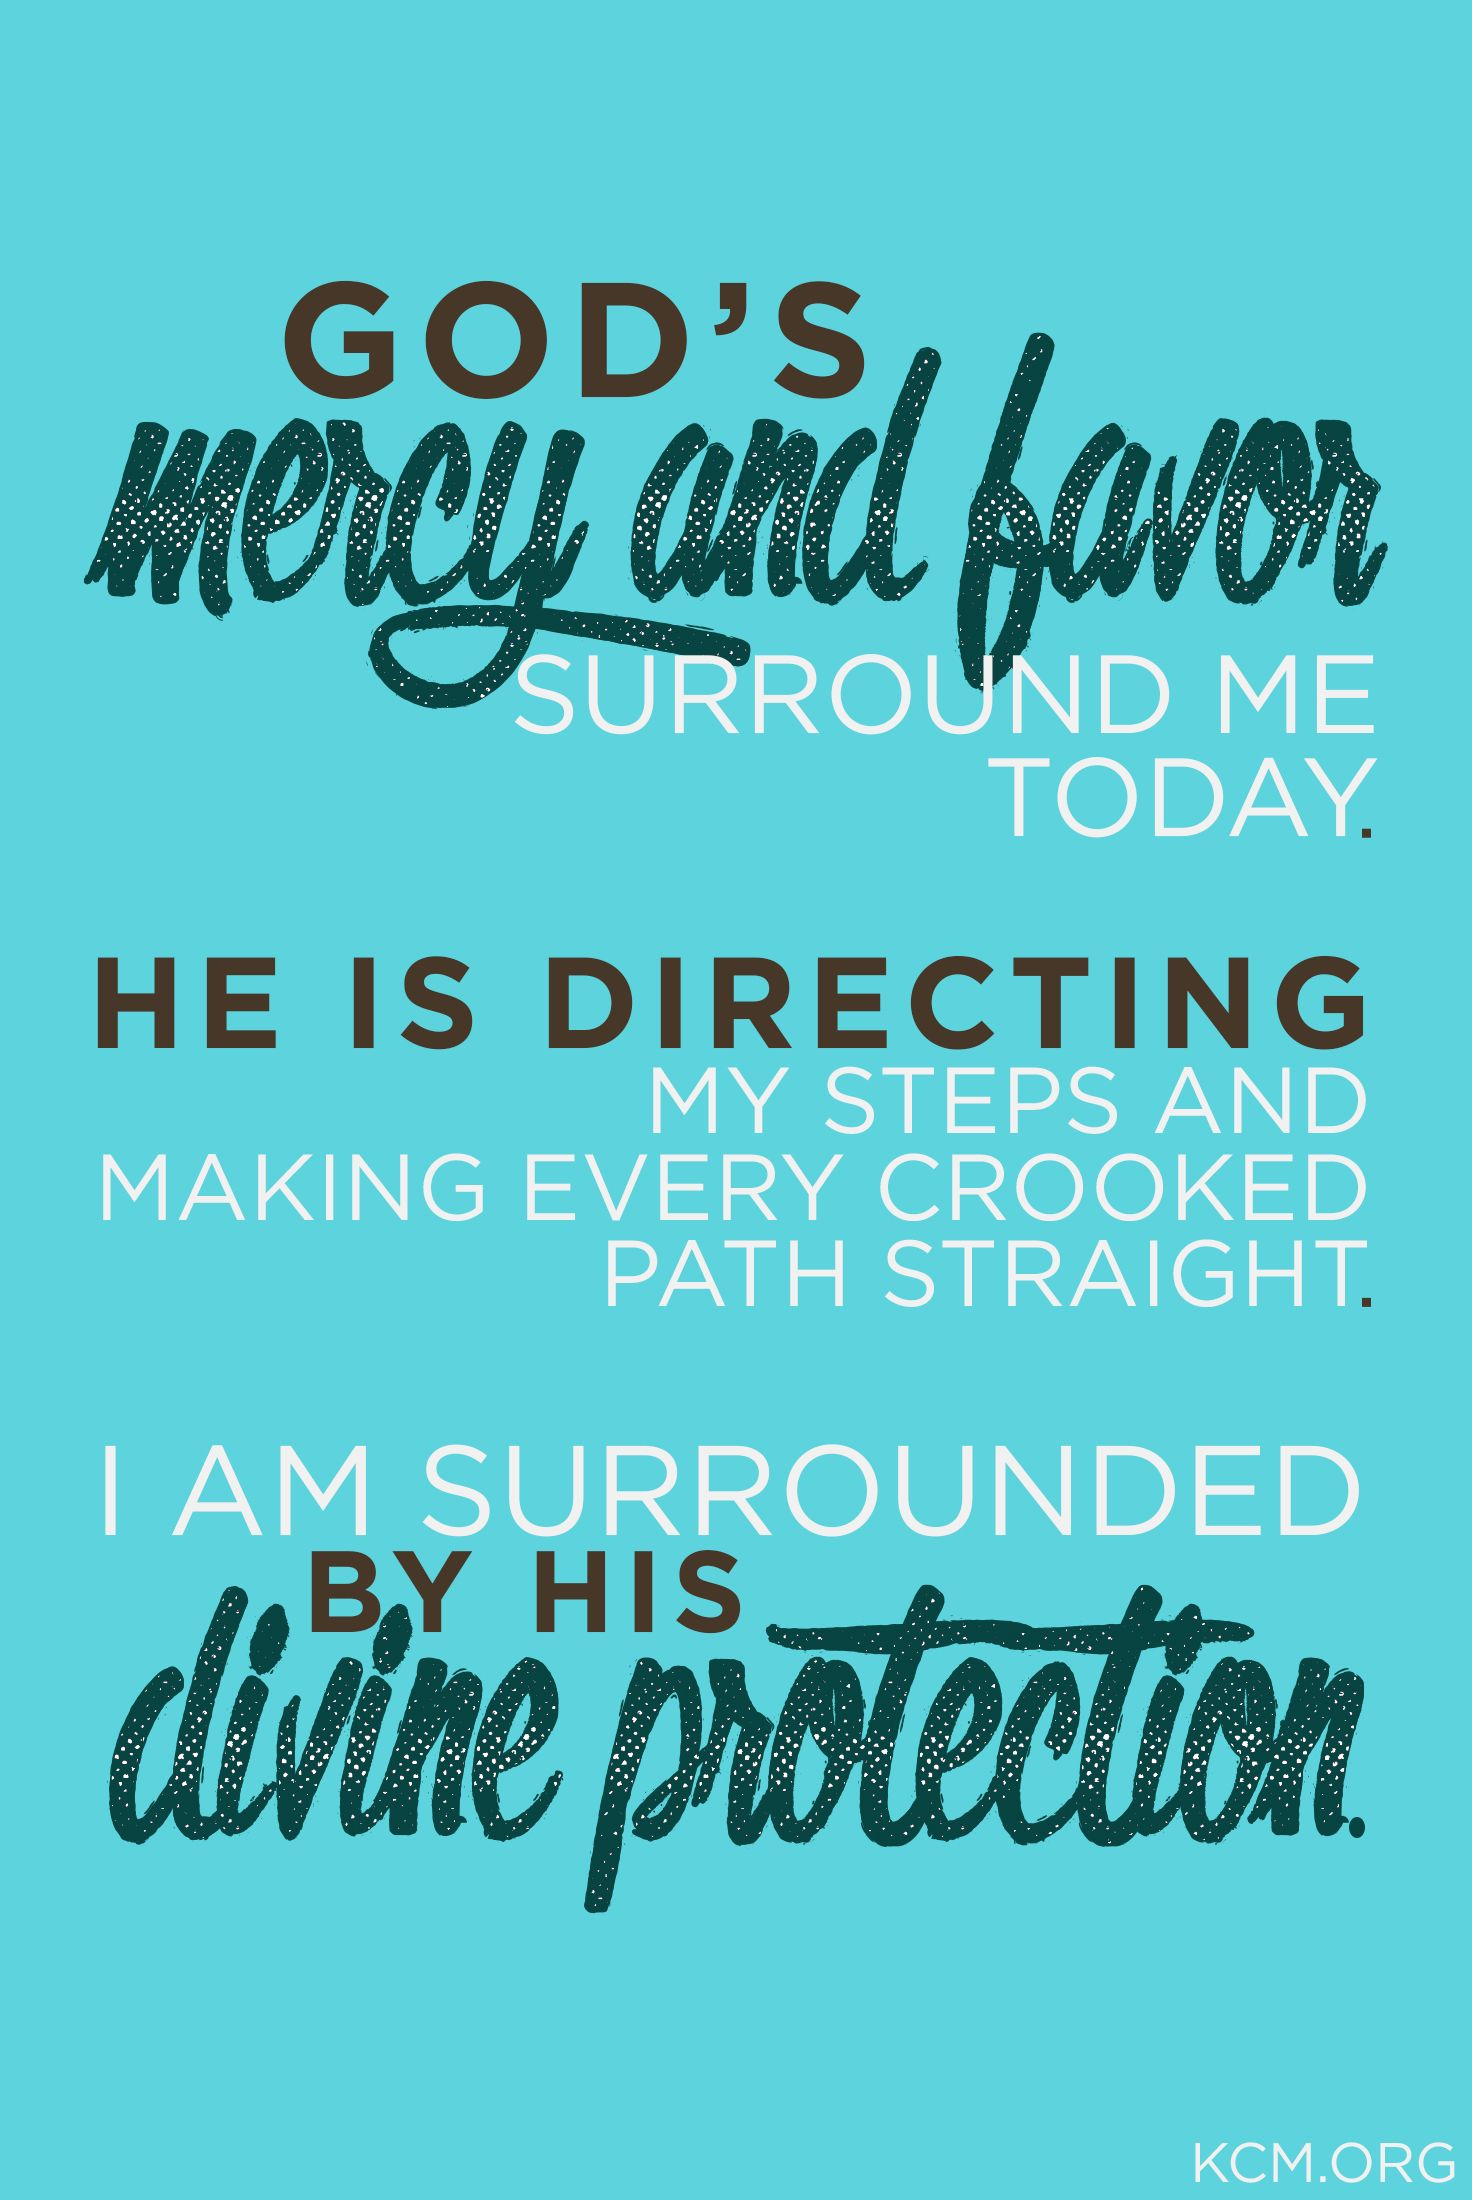 Gods mercy and favor surround me todayhe is directing